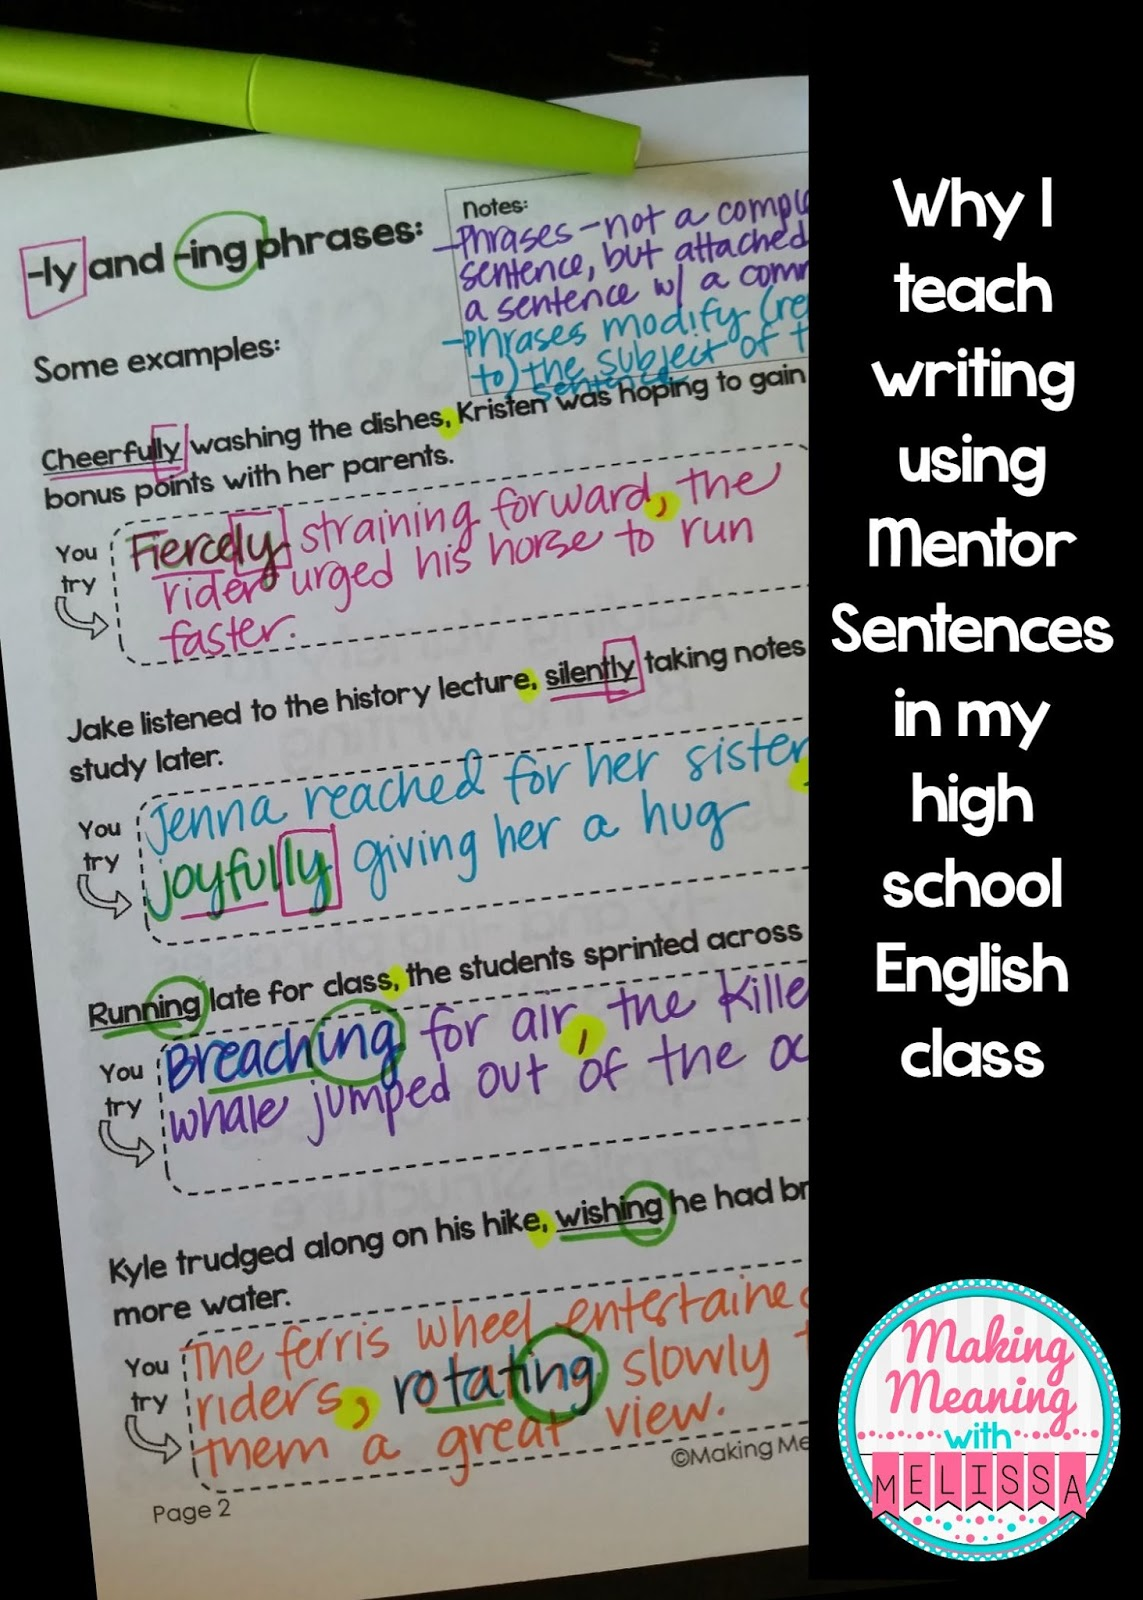 english essays for high school students